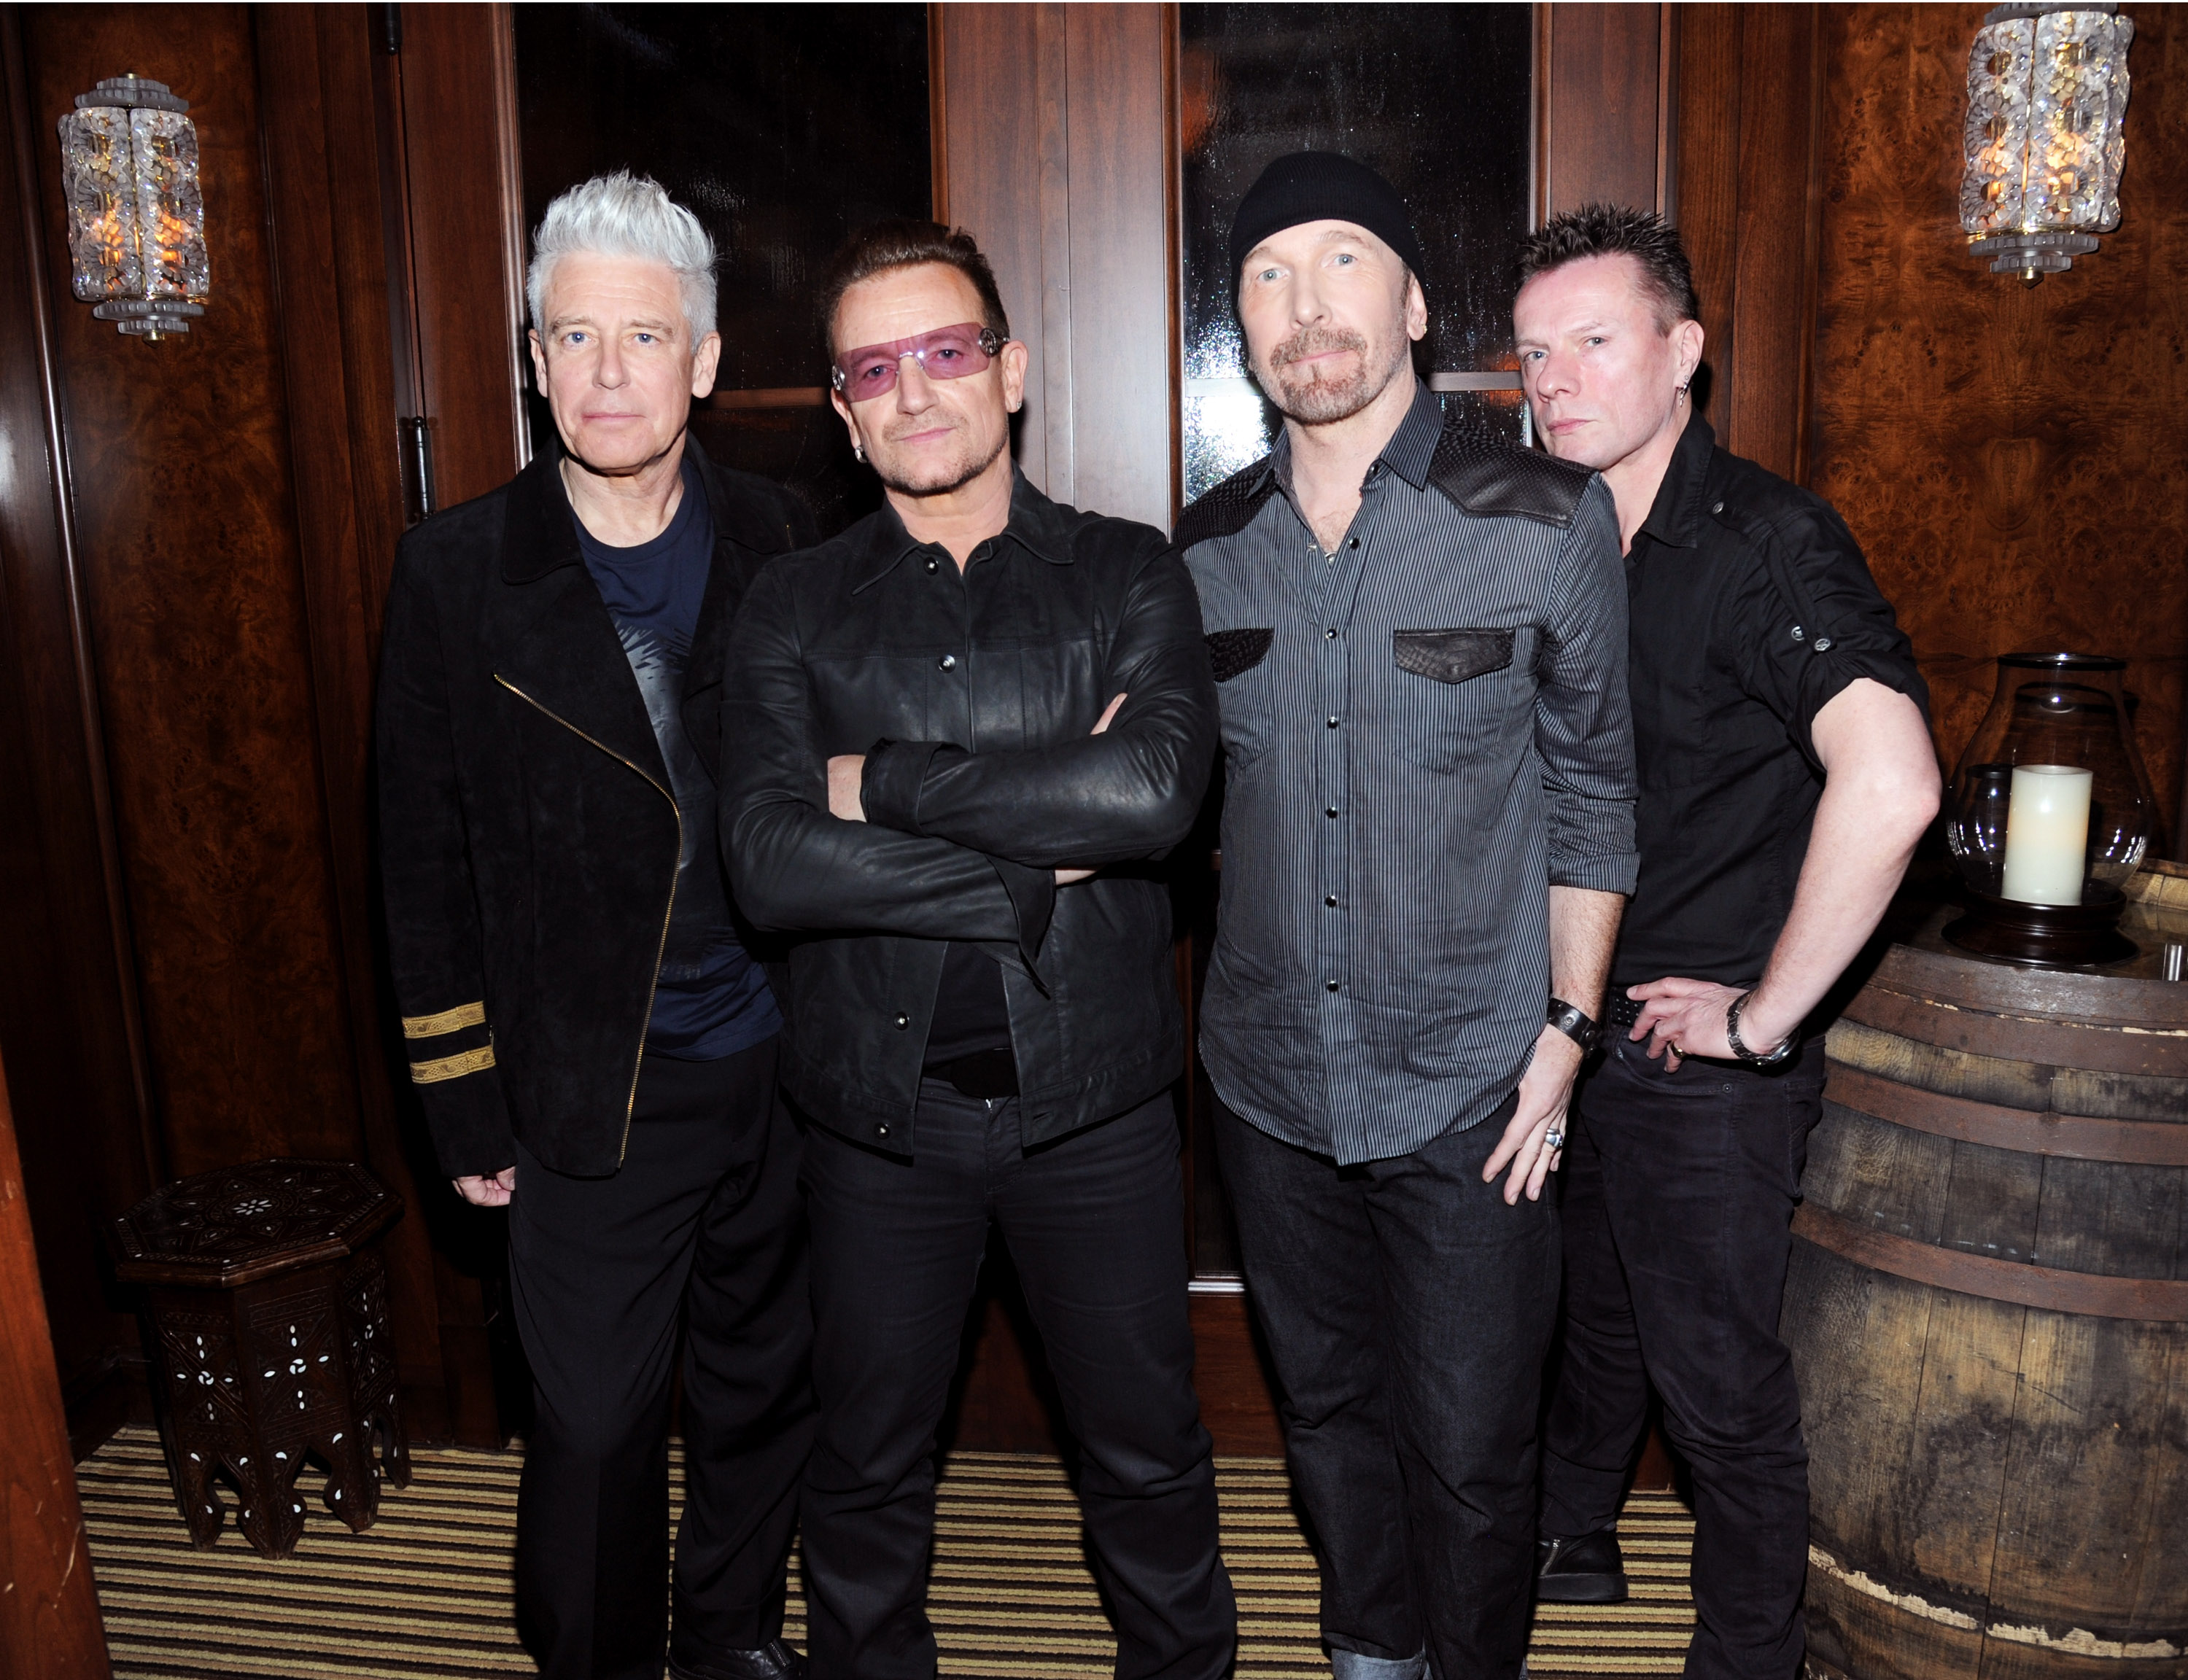 BEVERLY HILLS, CA - JANUARY 11:  (Exclusive Coverage)   Adam Clayton, Bono, The Edge and Larry Mullen Jr. of U2 attend the 3r